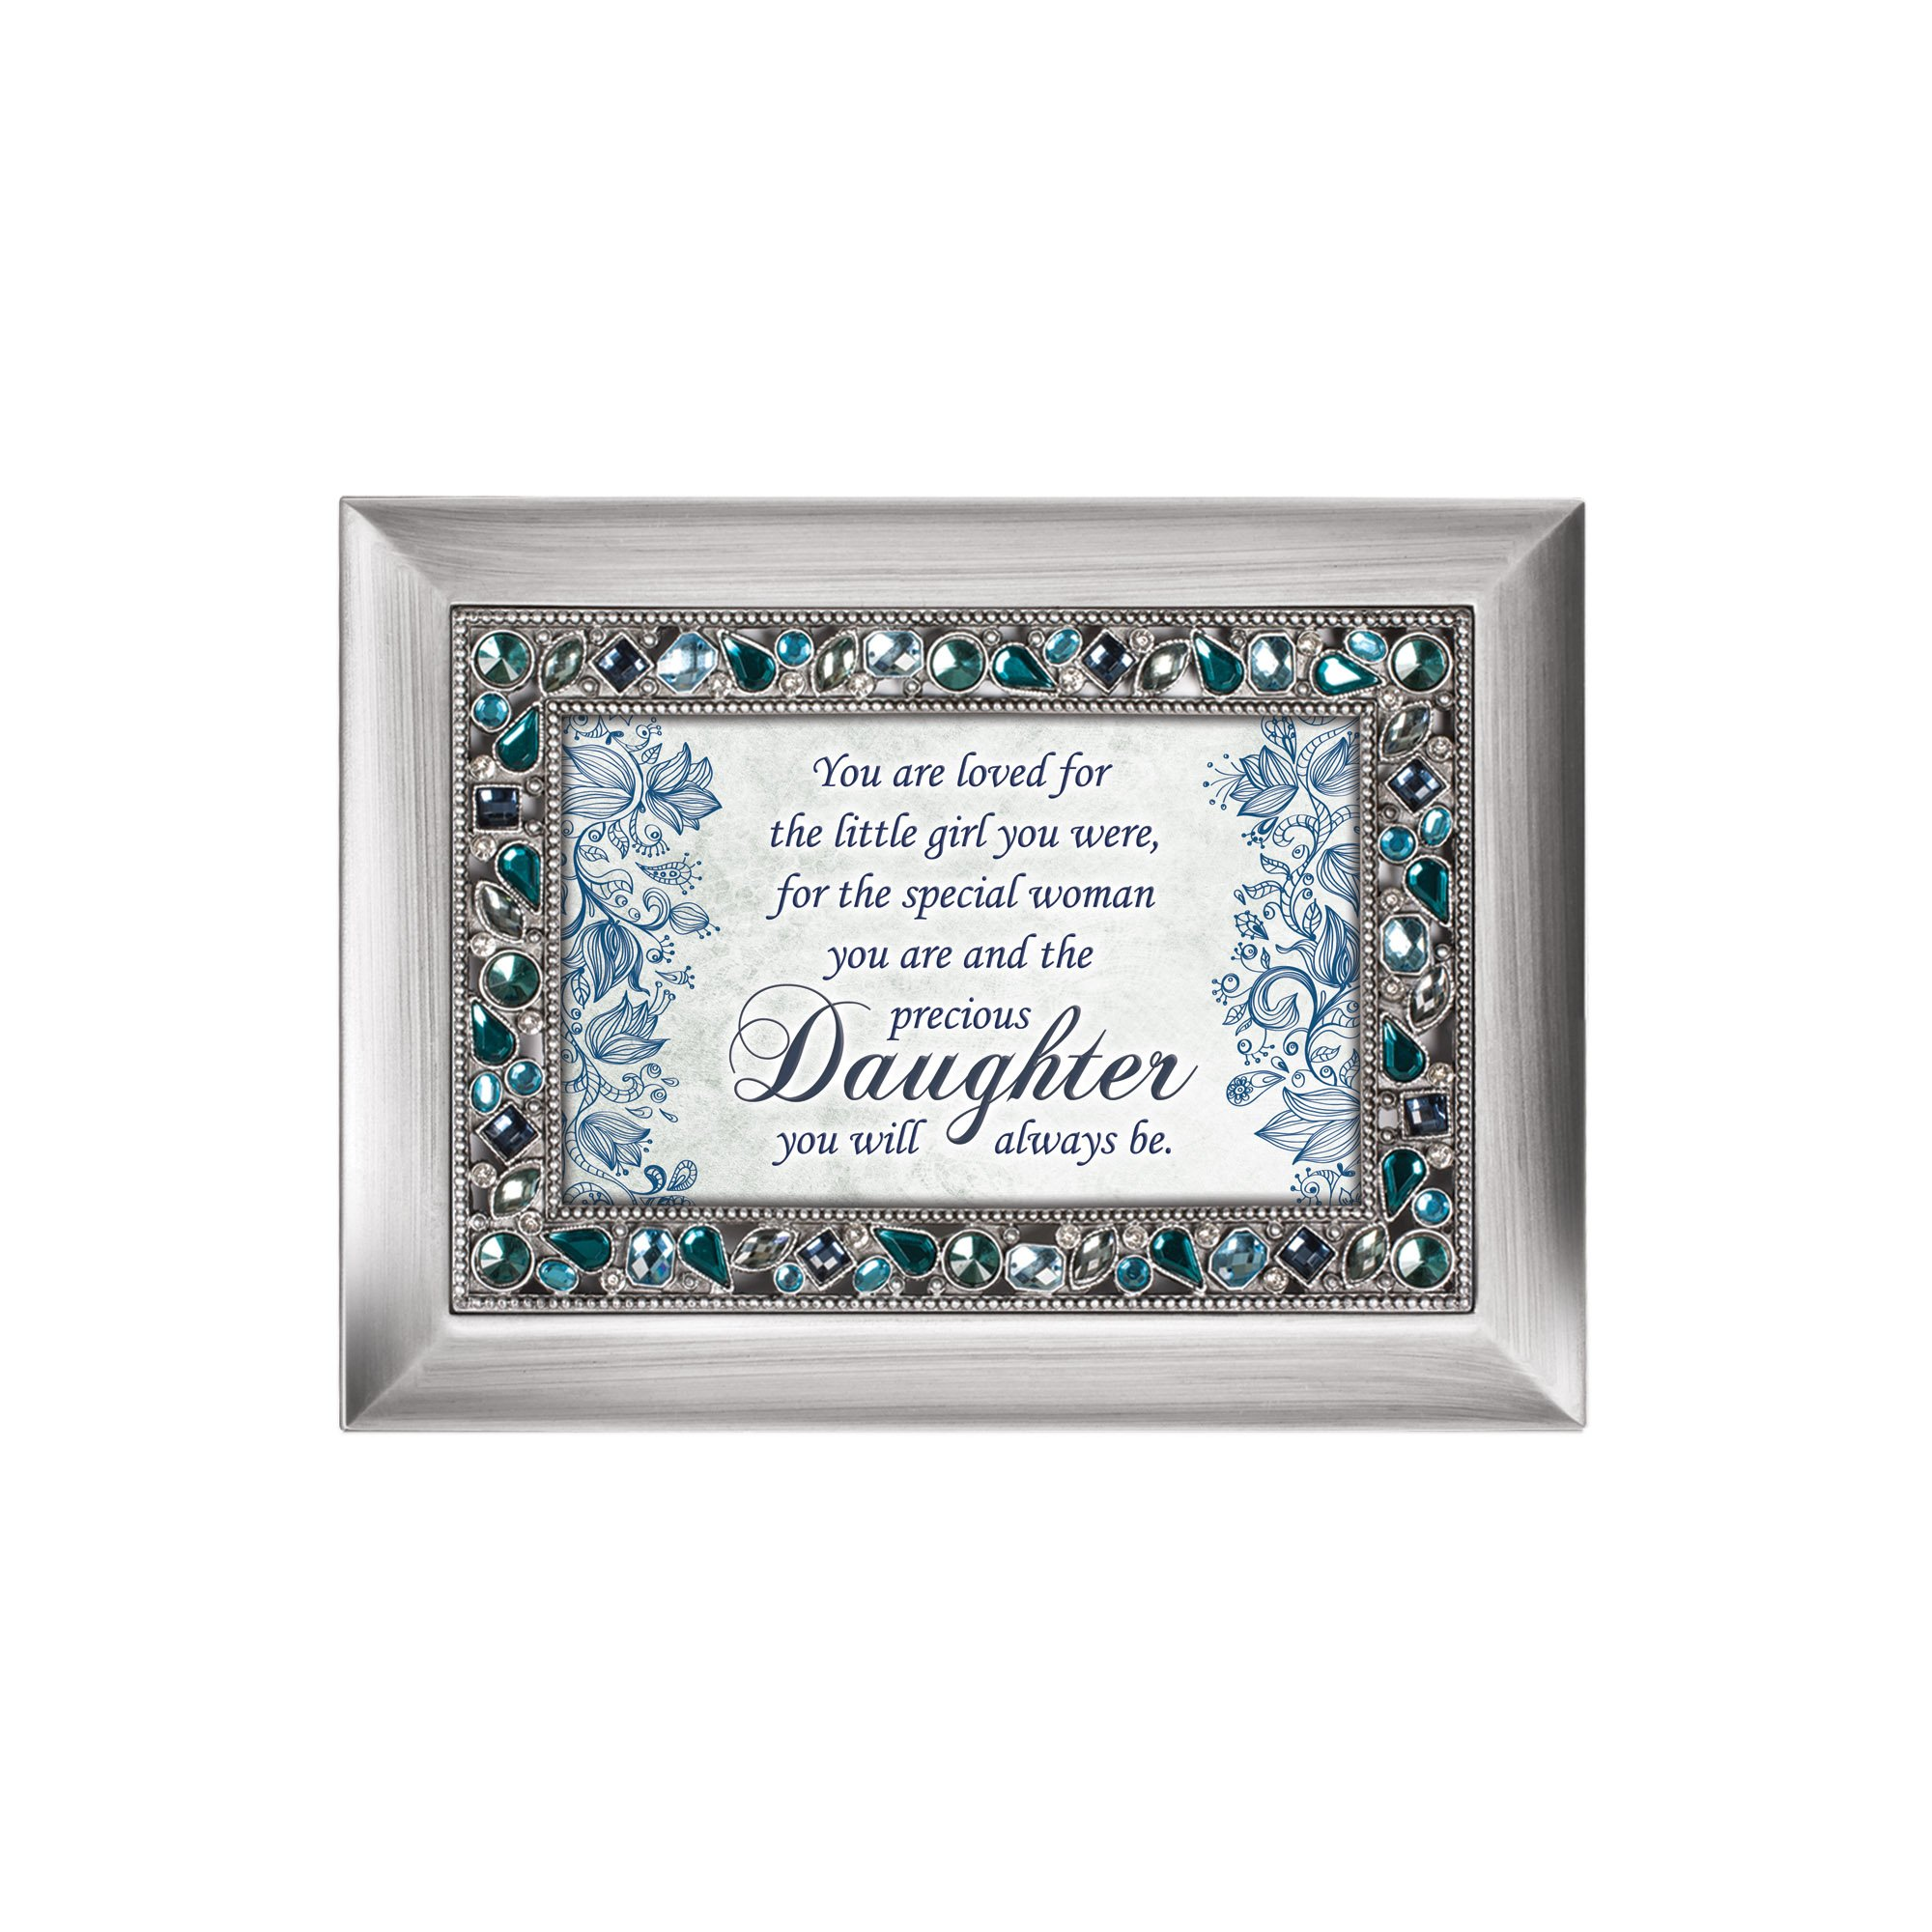 Special Woman Precious Daughter Jeweled Silver Colored Keepsake Music Box Plays You Light Up My Life by Cottage Garden (Image #2)